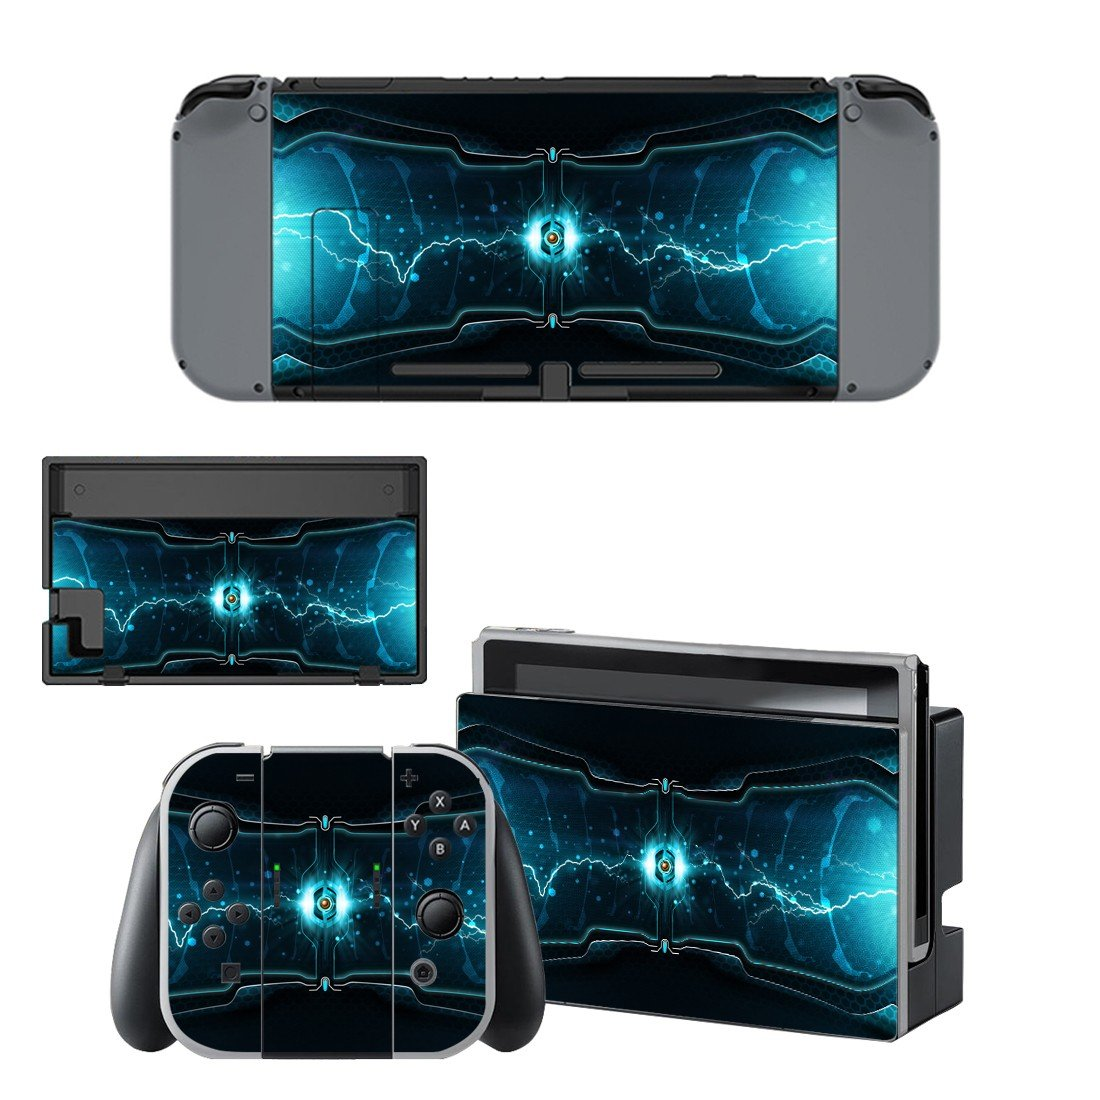 Cylinder spark decal for Nintendo switch console sticker skin